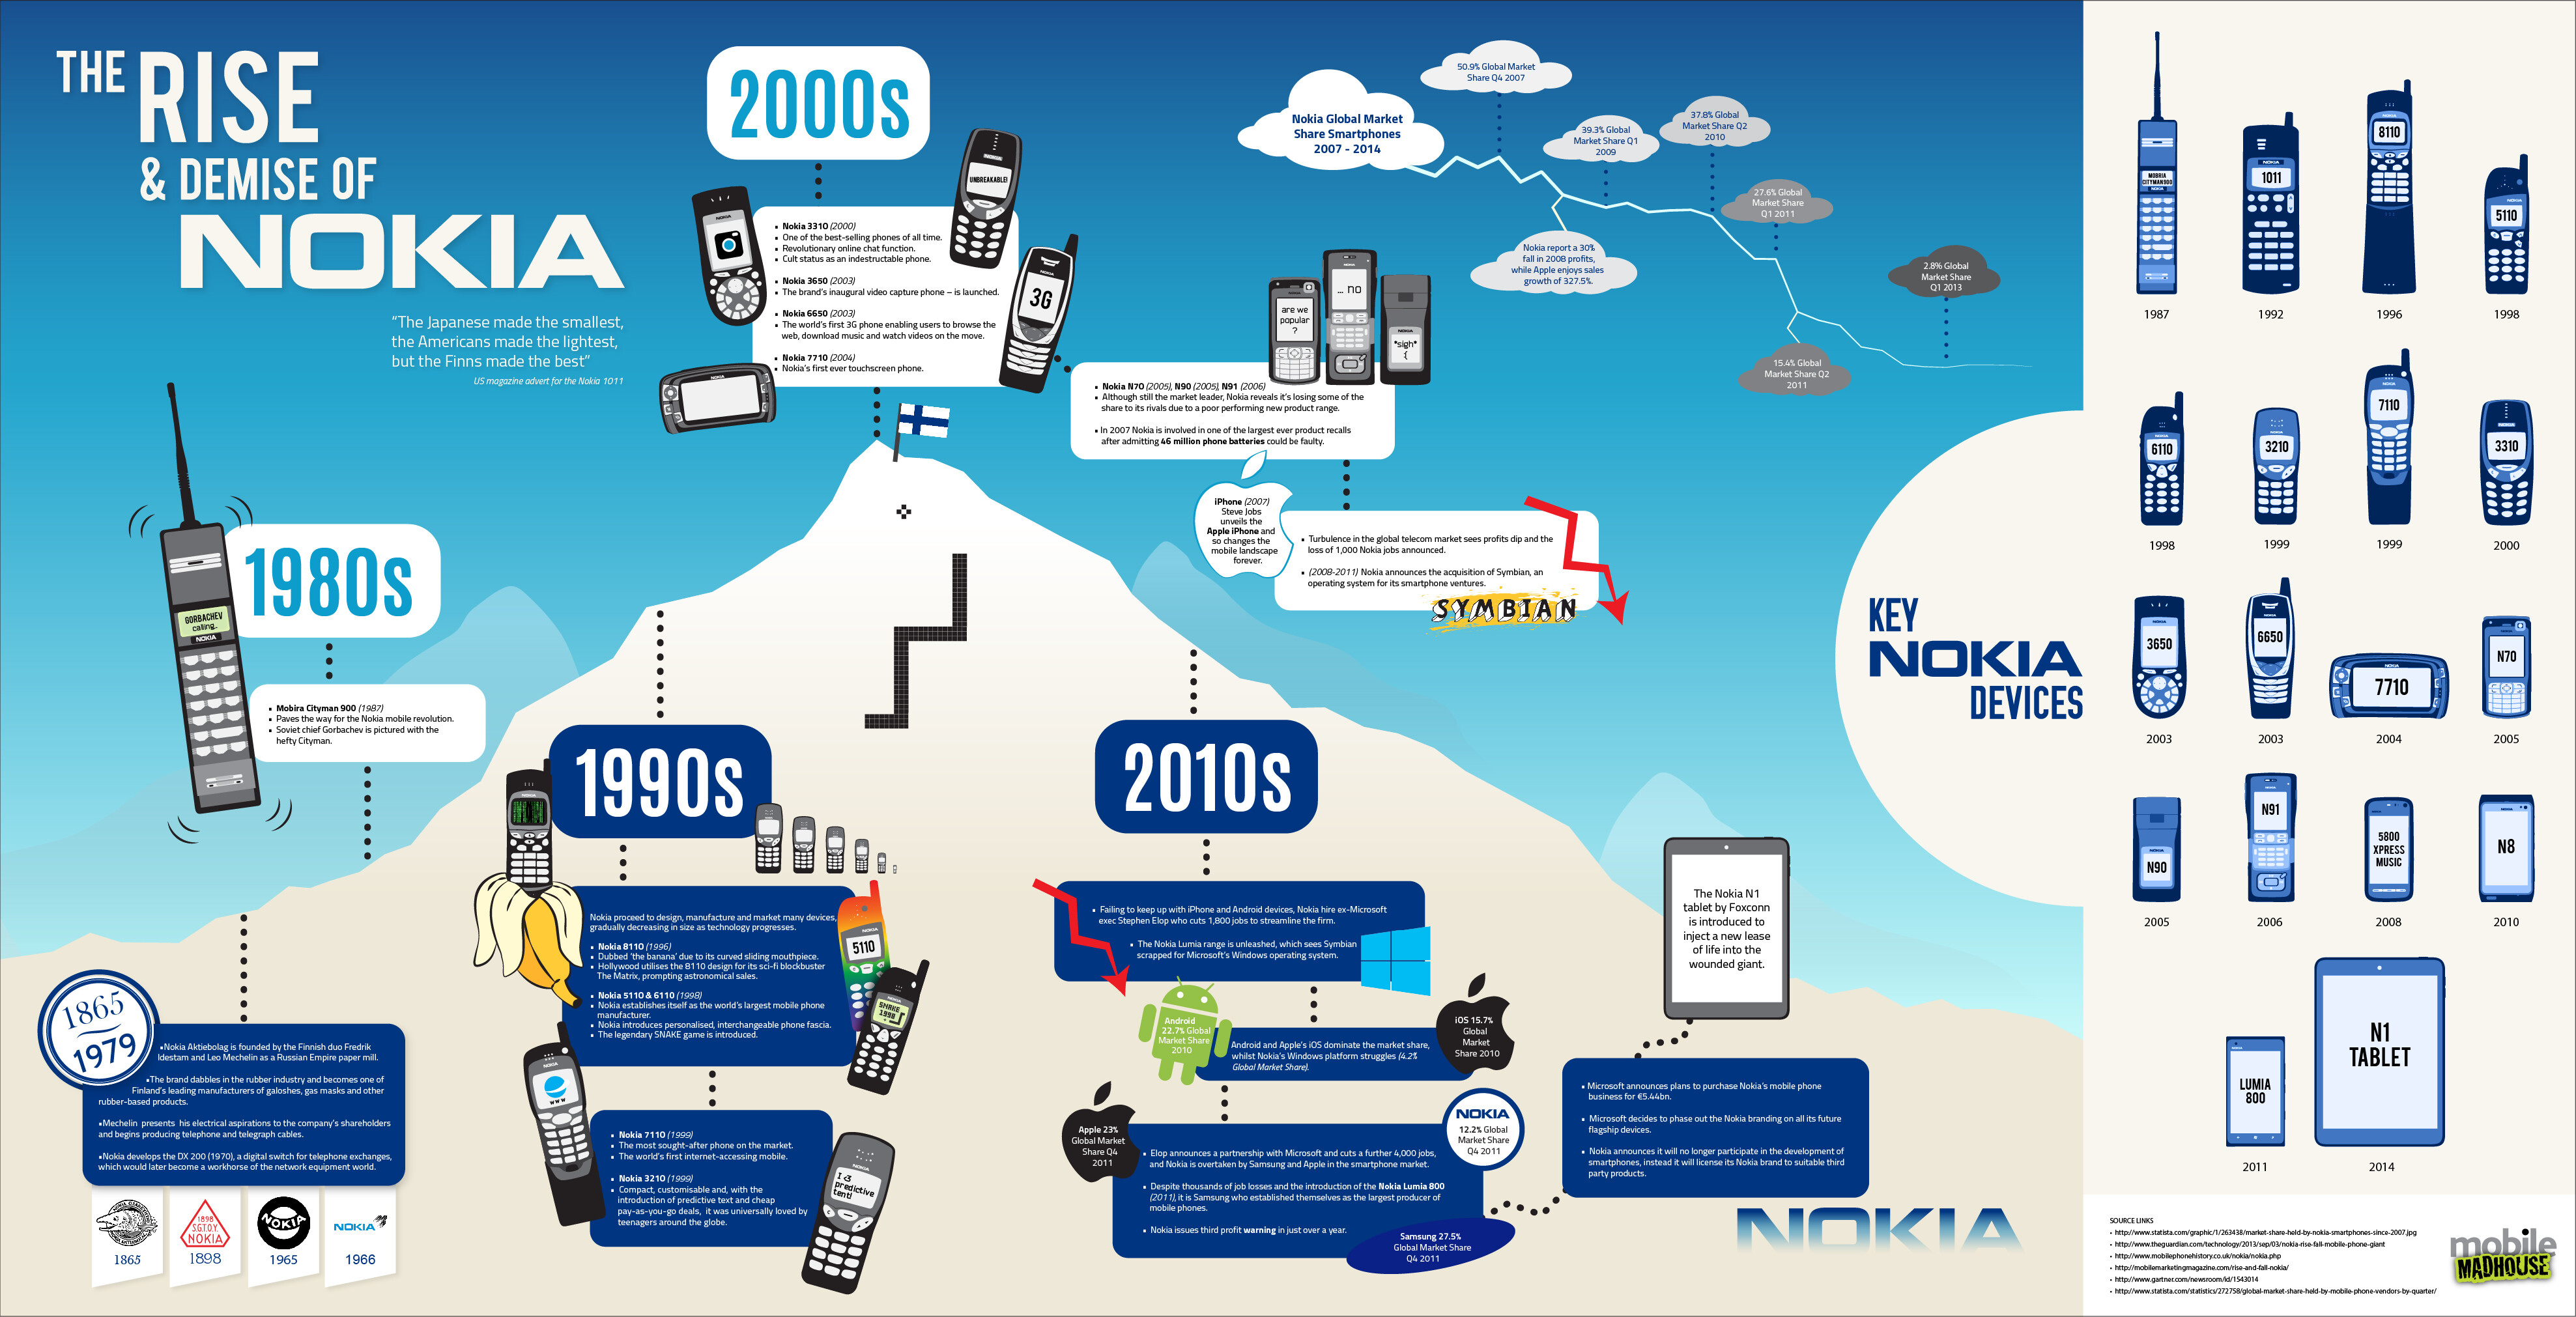 an analysis of nokia in the worlds largest telecommunication companies But also the most diverse group to fit hand-in-glove with our an analysis of nokia in the worlds largest telecommunication companies think in the setting and plot.